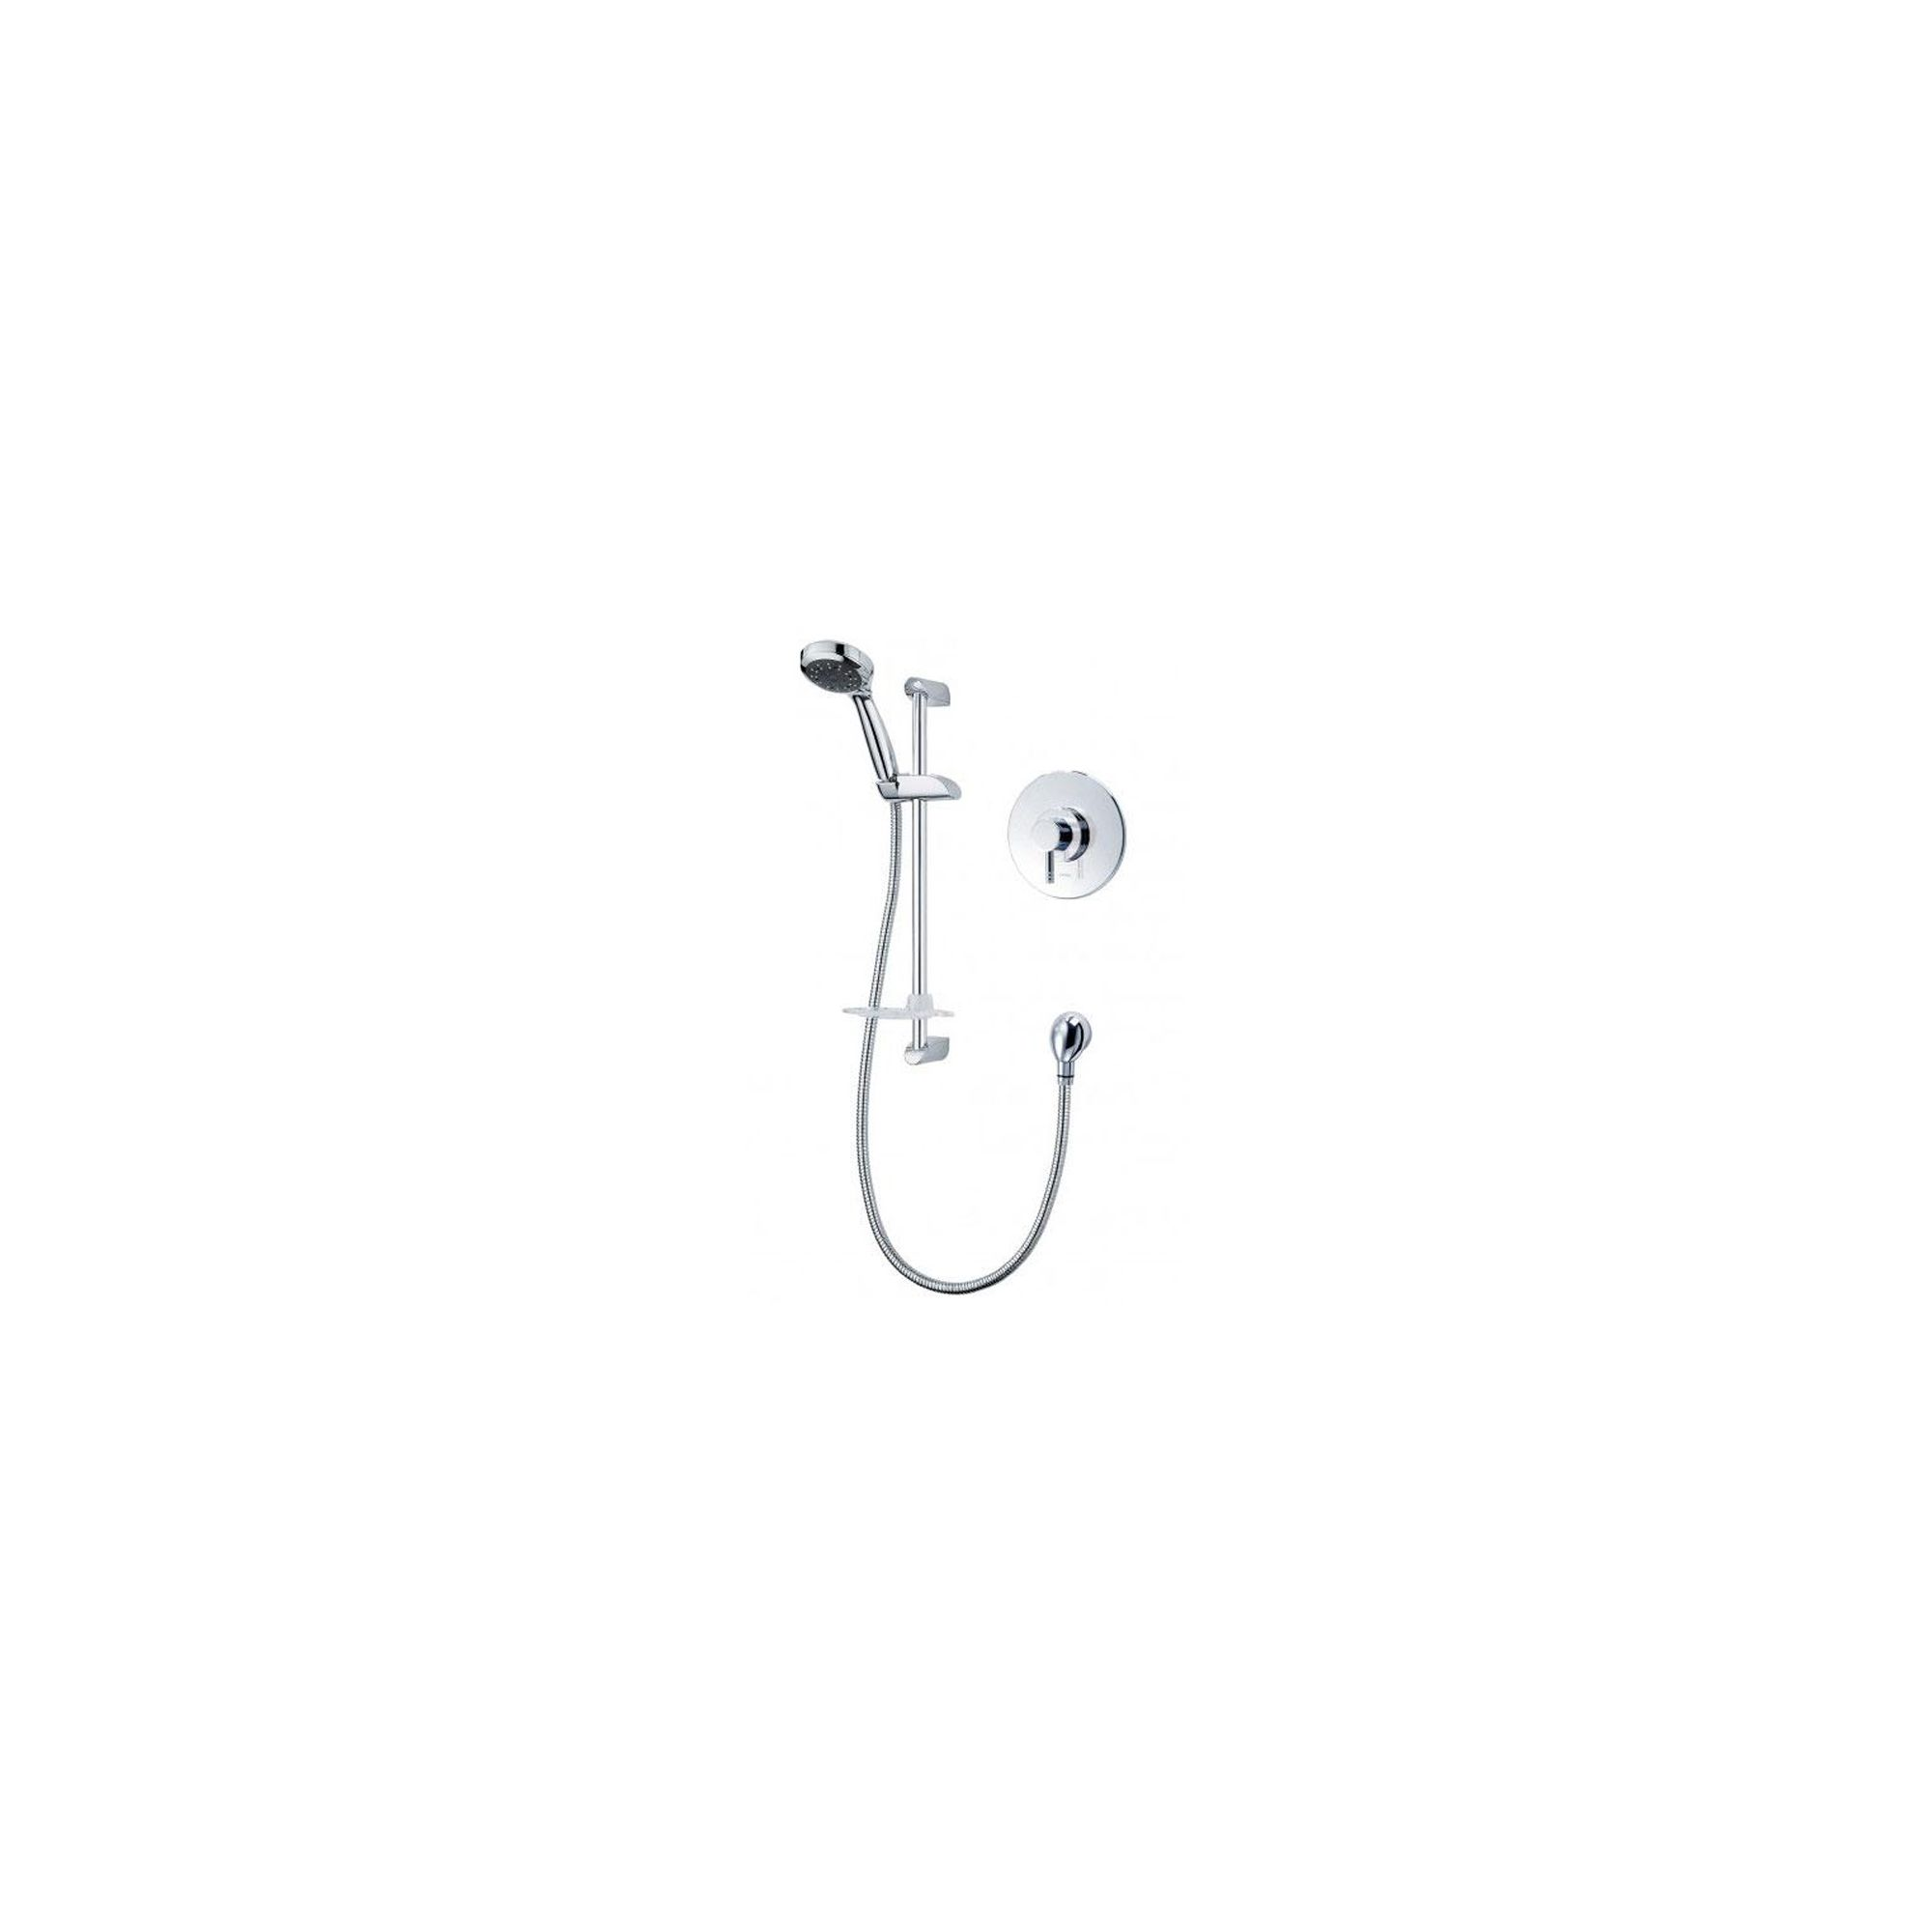 Triton Thames Built-In Thermostatic Sequential Mixer Chrome at Tesco Direct